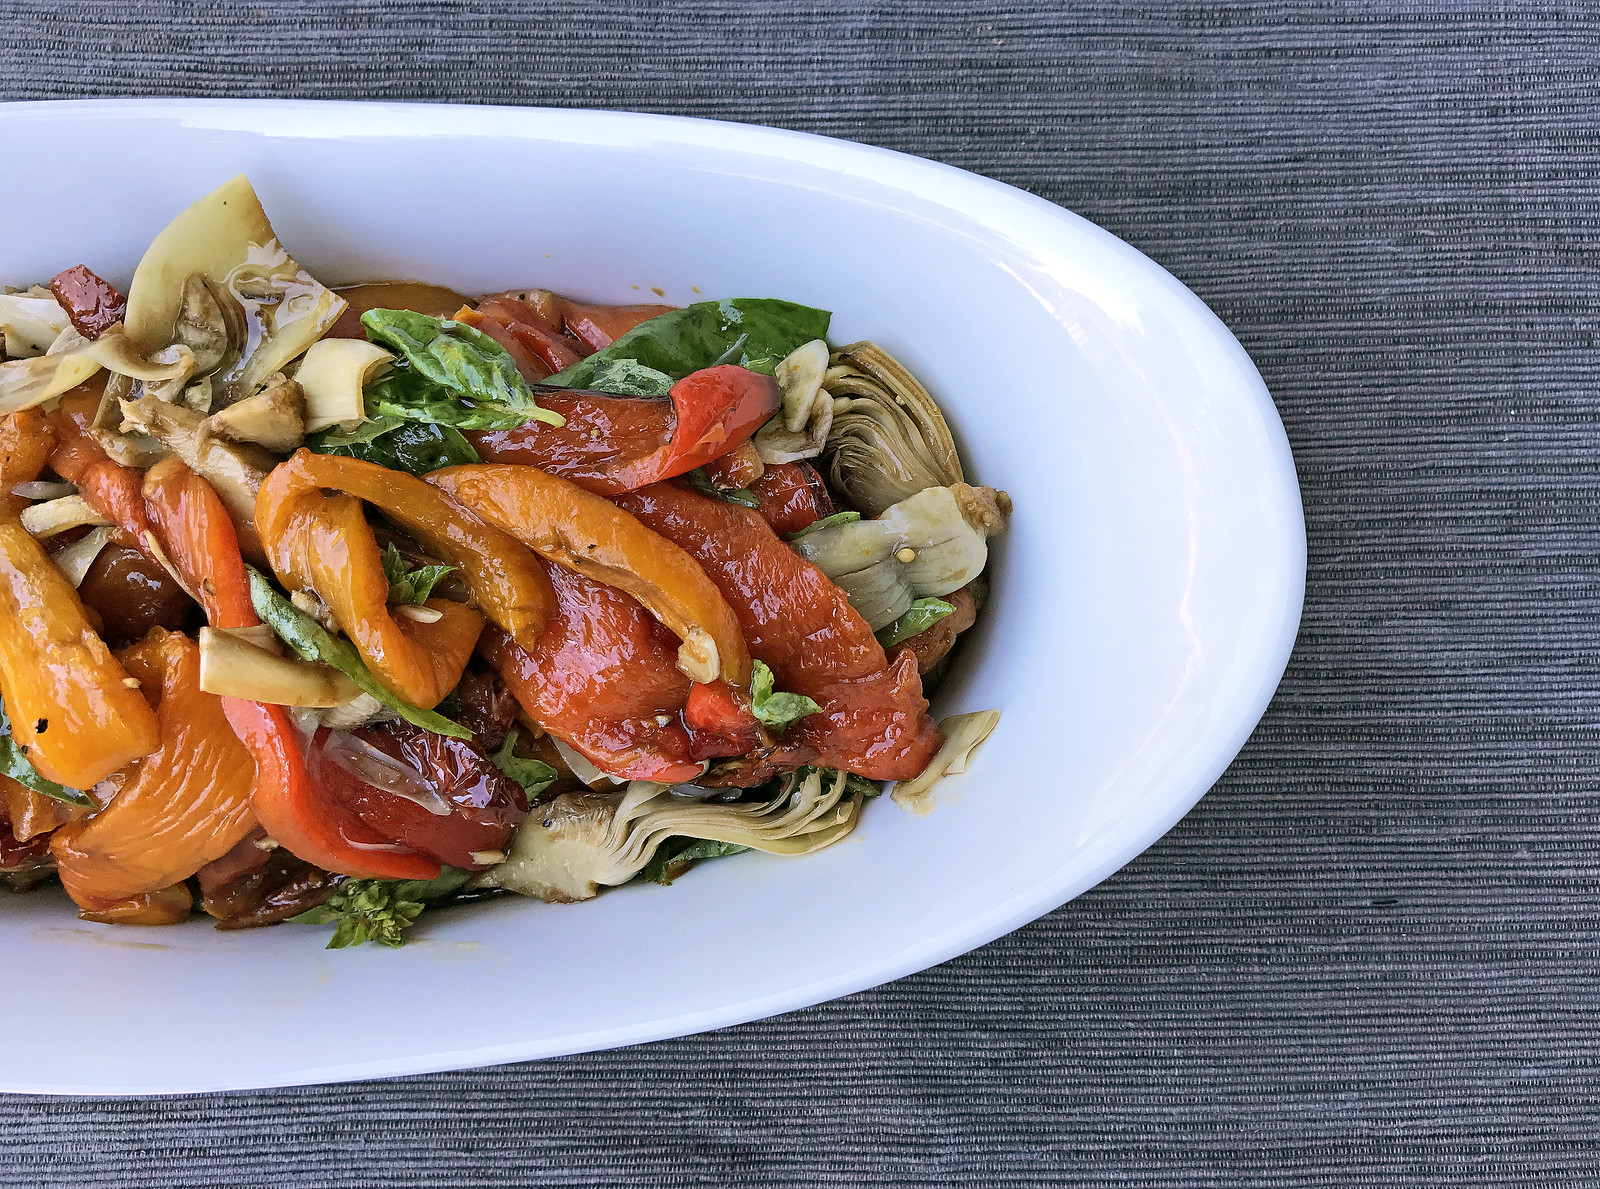 Roasted pepper and artichoke antipasto